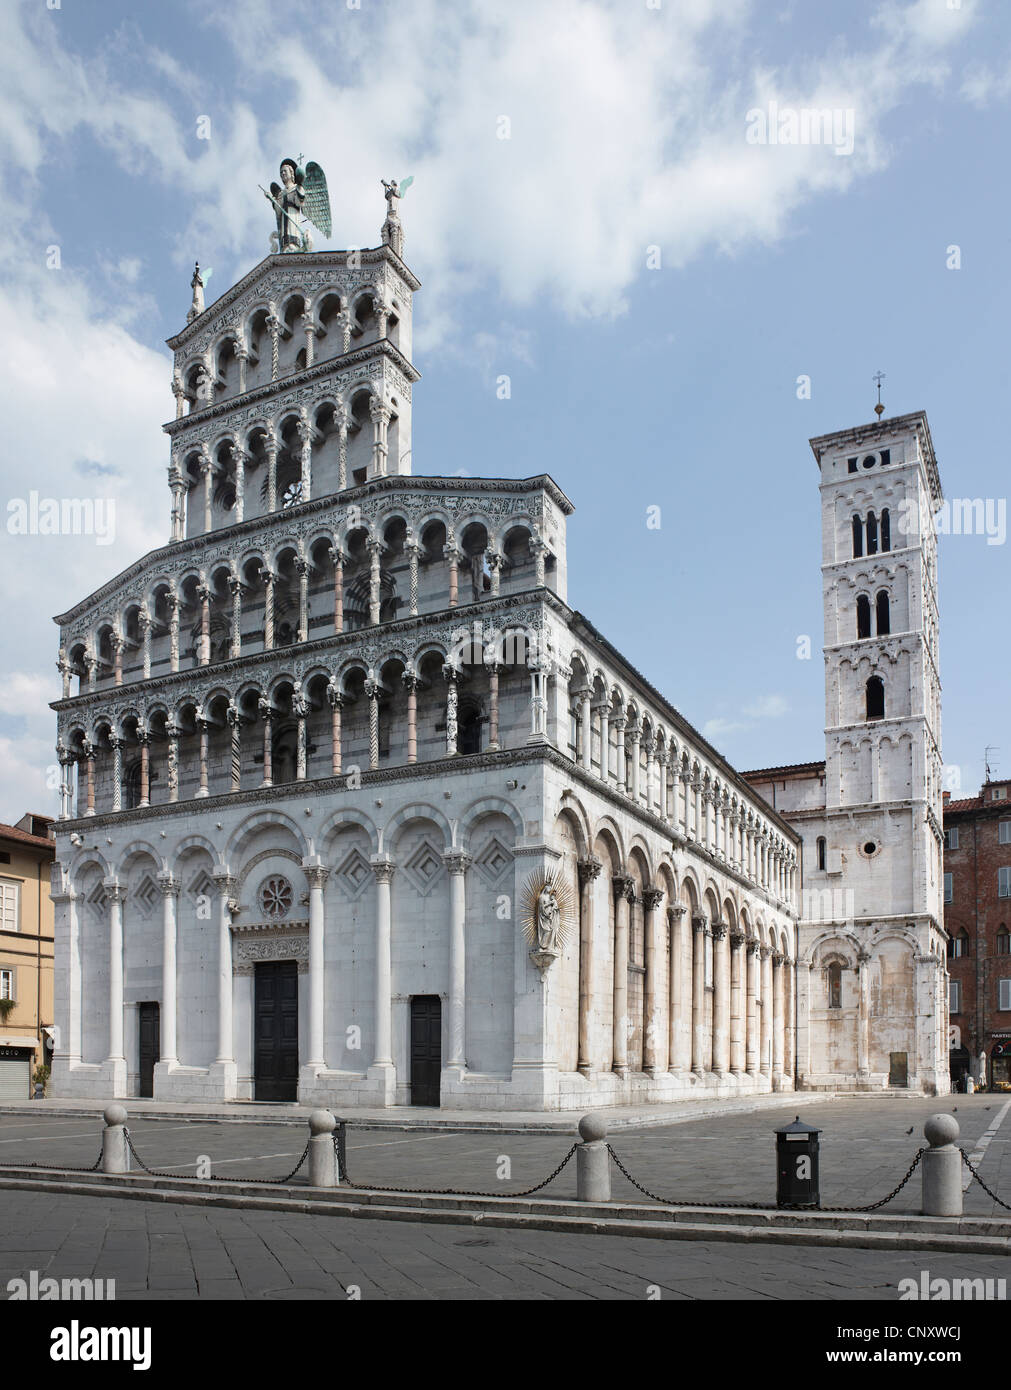 Church of San Michele, Lucca, Italy. Pisan Romanesque 12 th century with tall campanile or bell tower Facade of - Stock Image